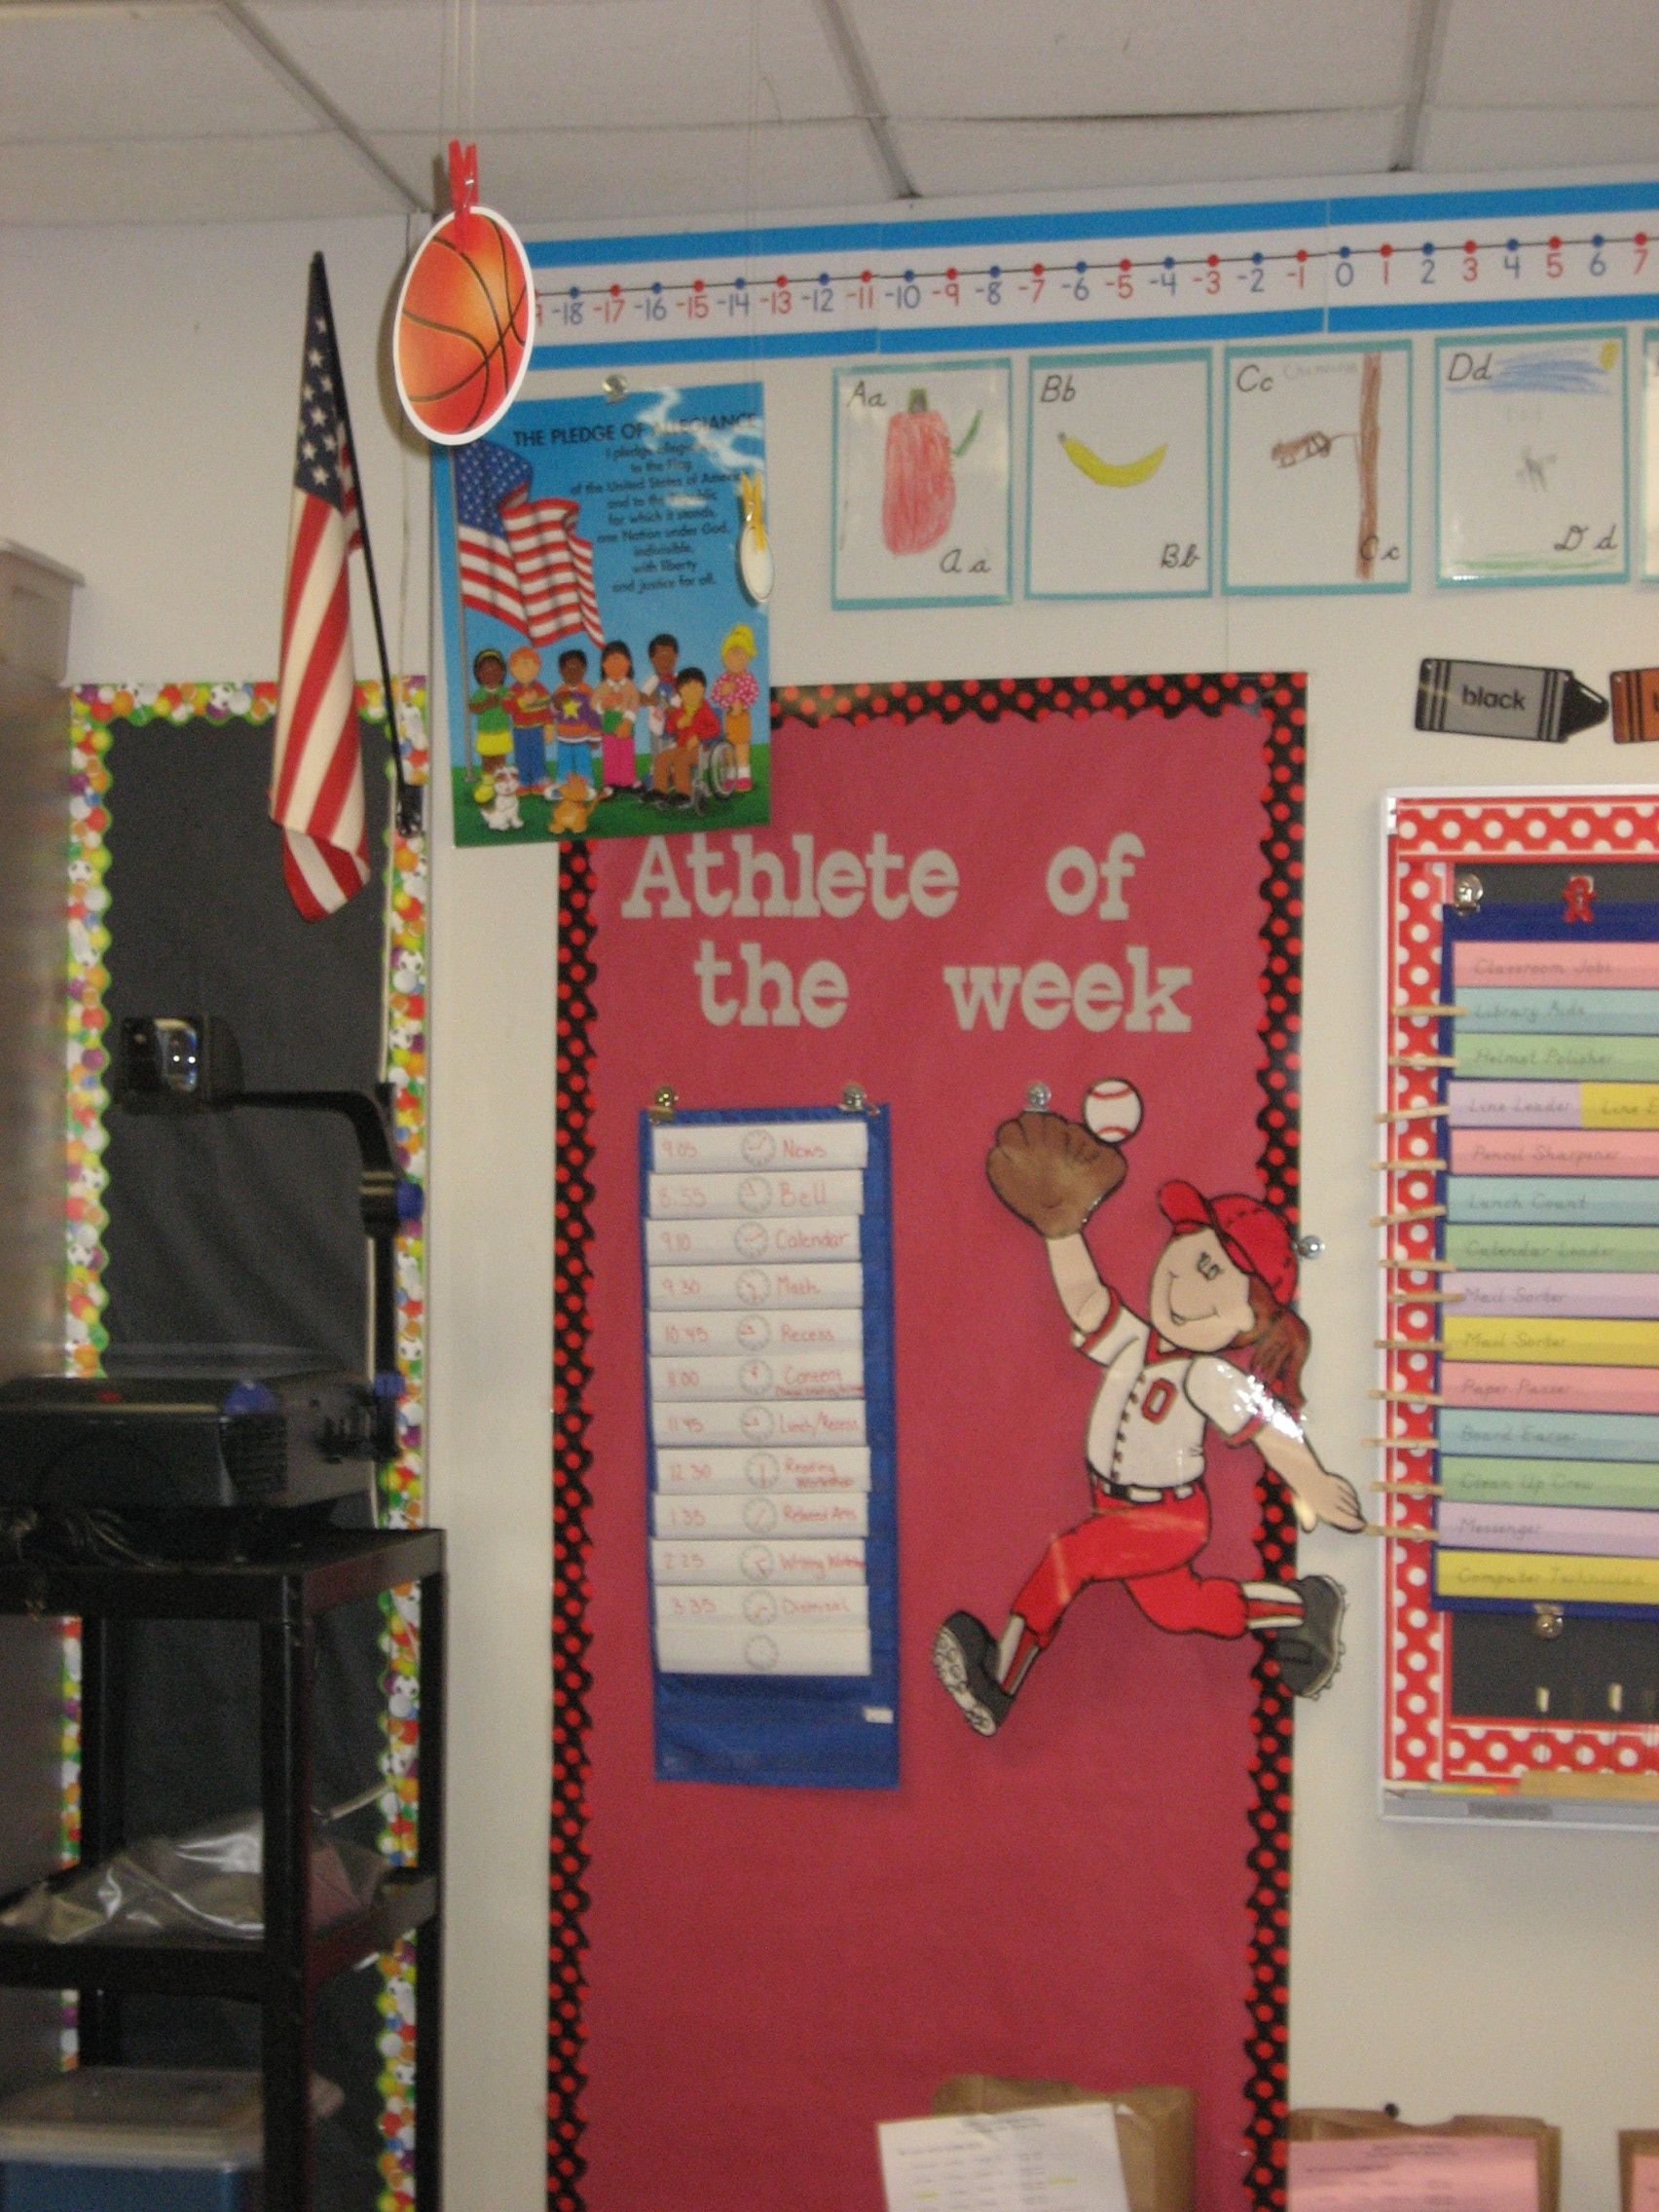 Star student/athlete of the week